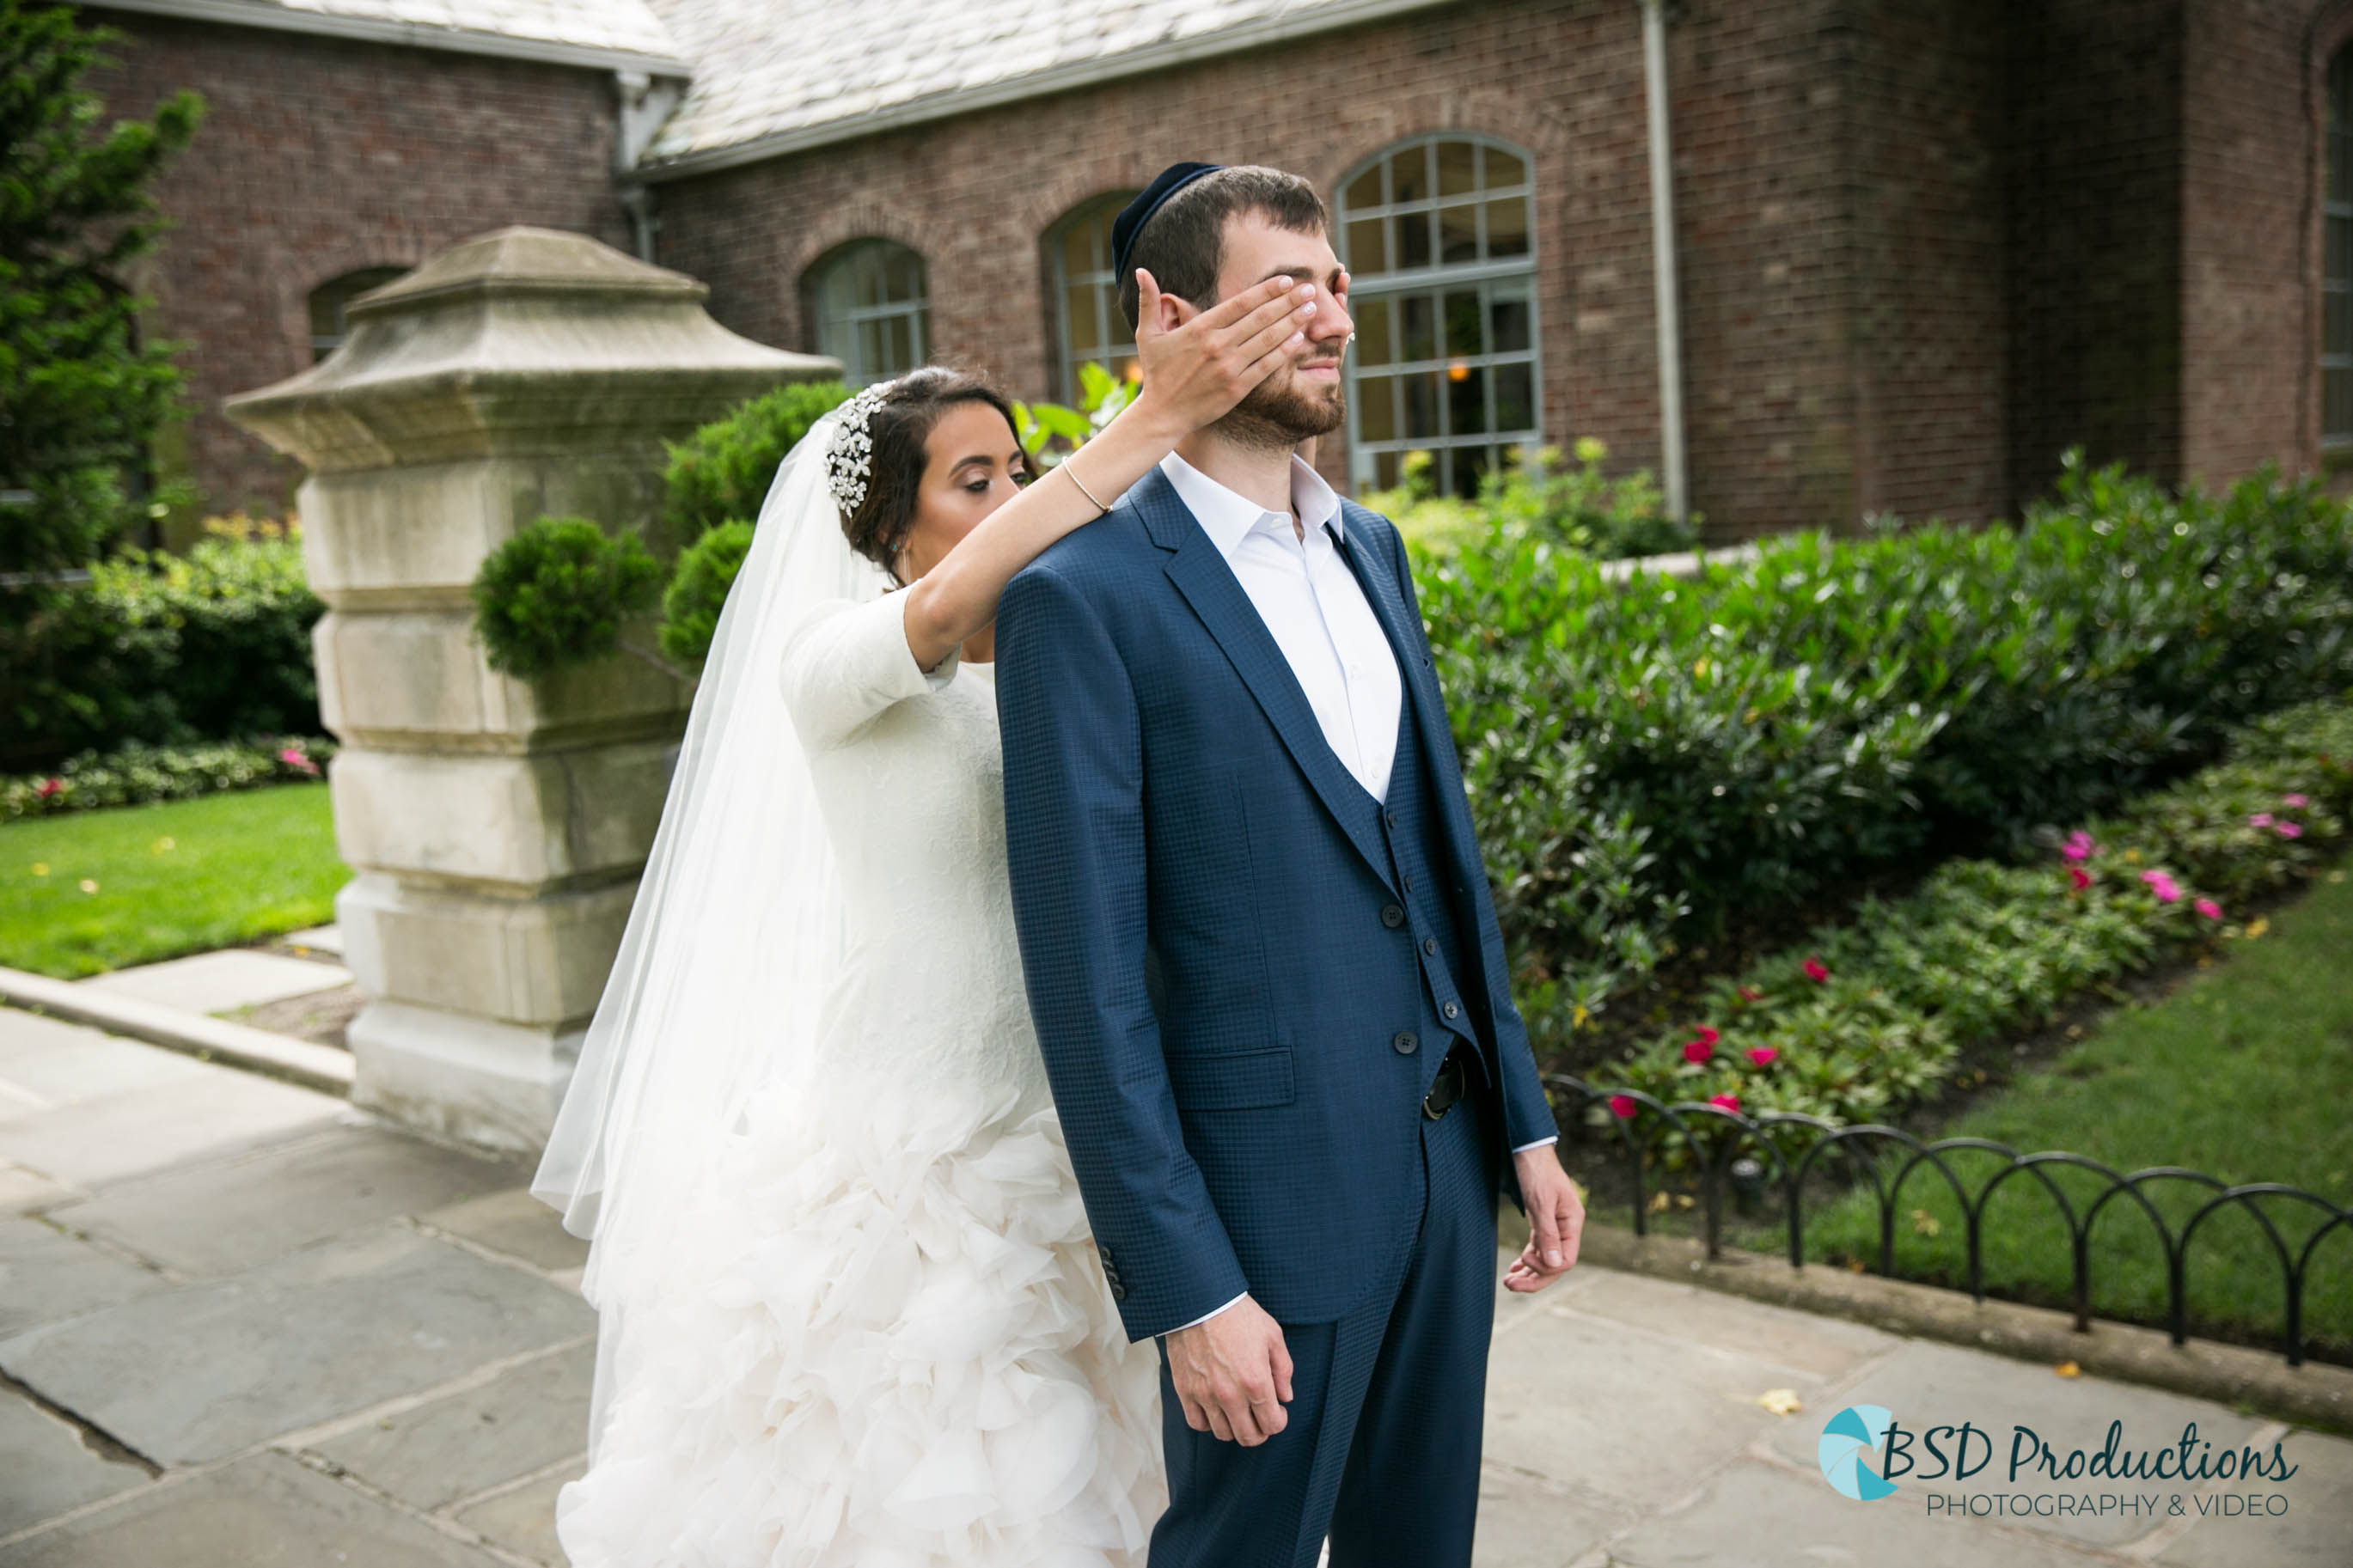 UH5A2471 Wedding – BSD Productions Photography